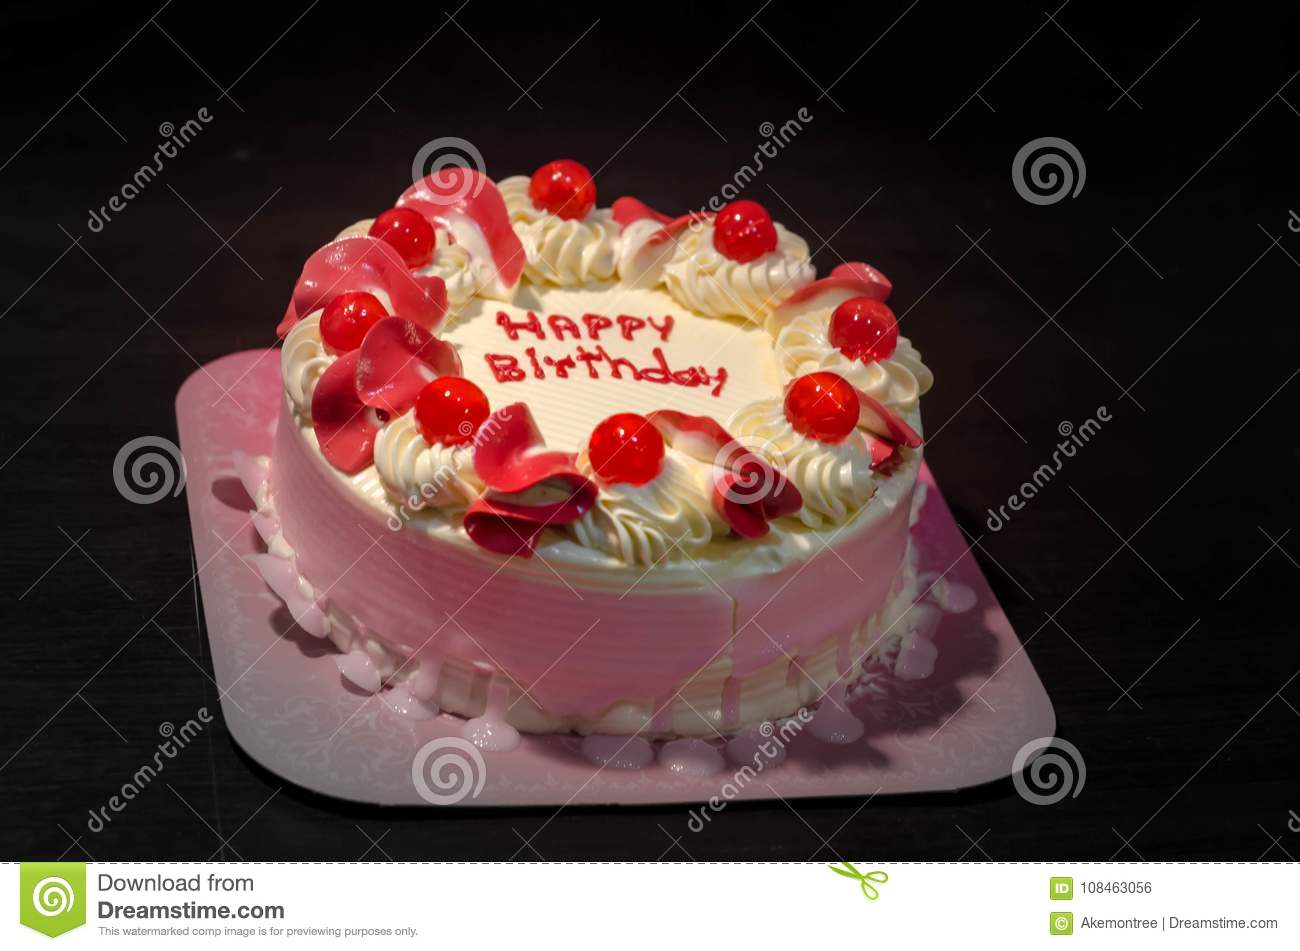 Hbd Cake In Pink White Tone Decorate By Happy Birthday Words Stock